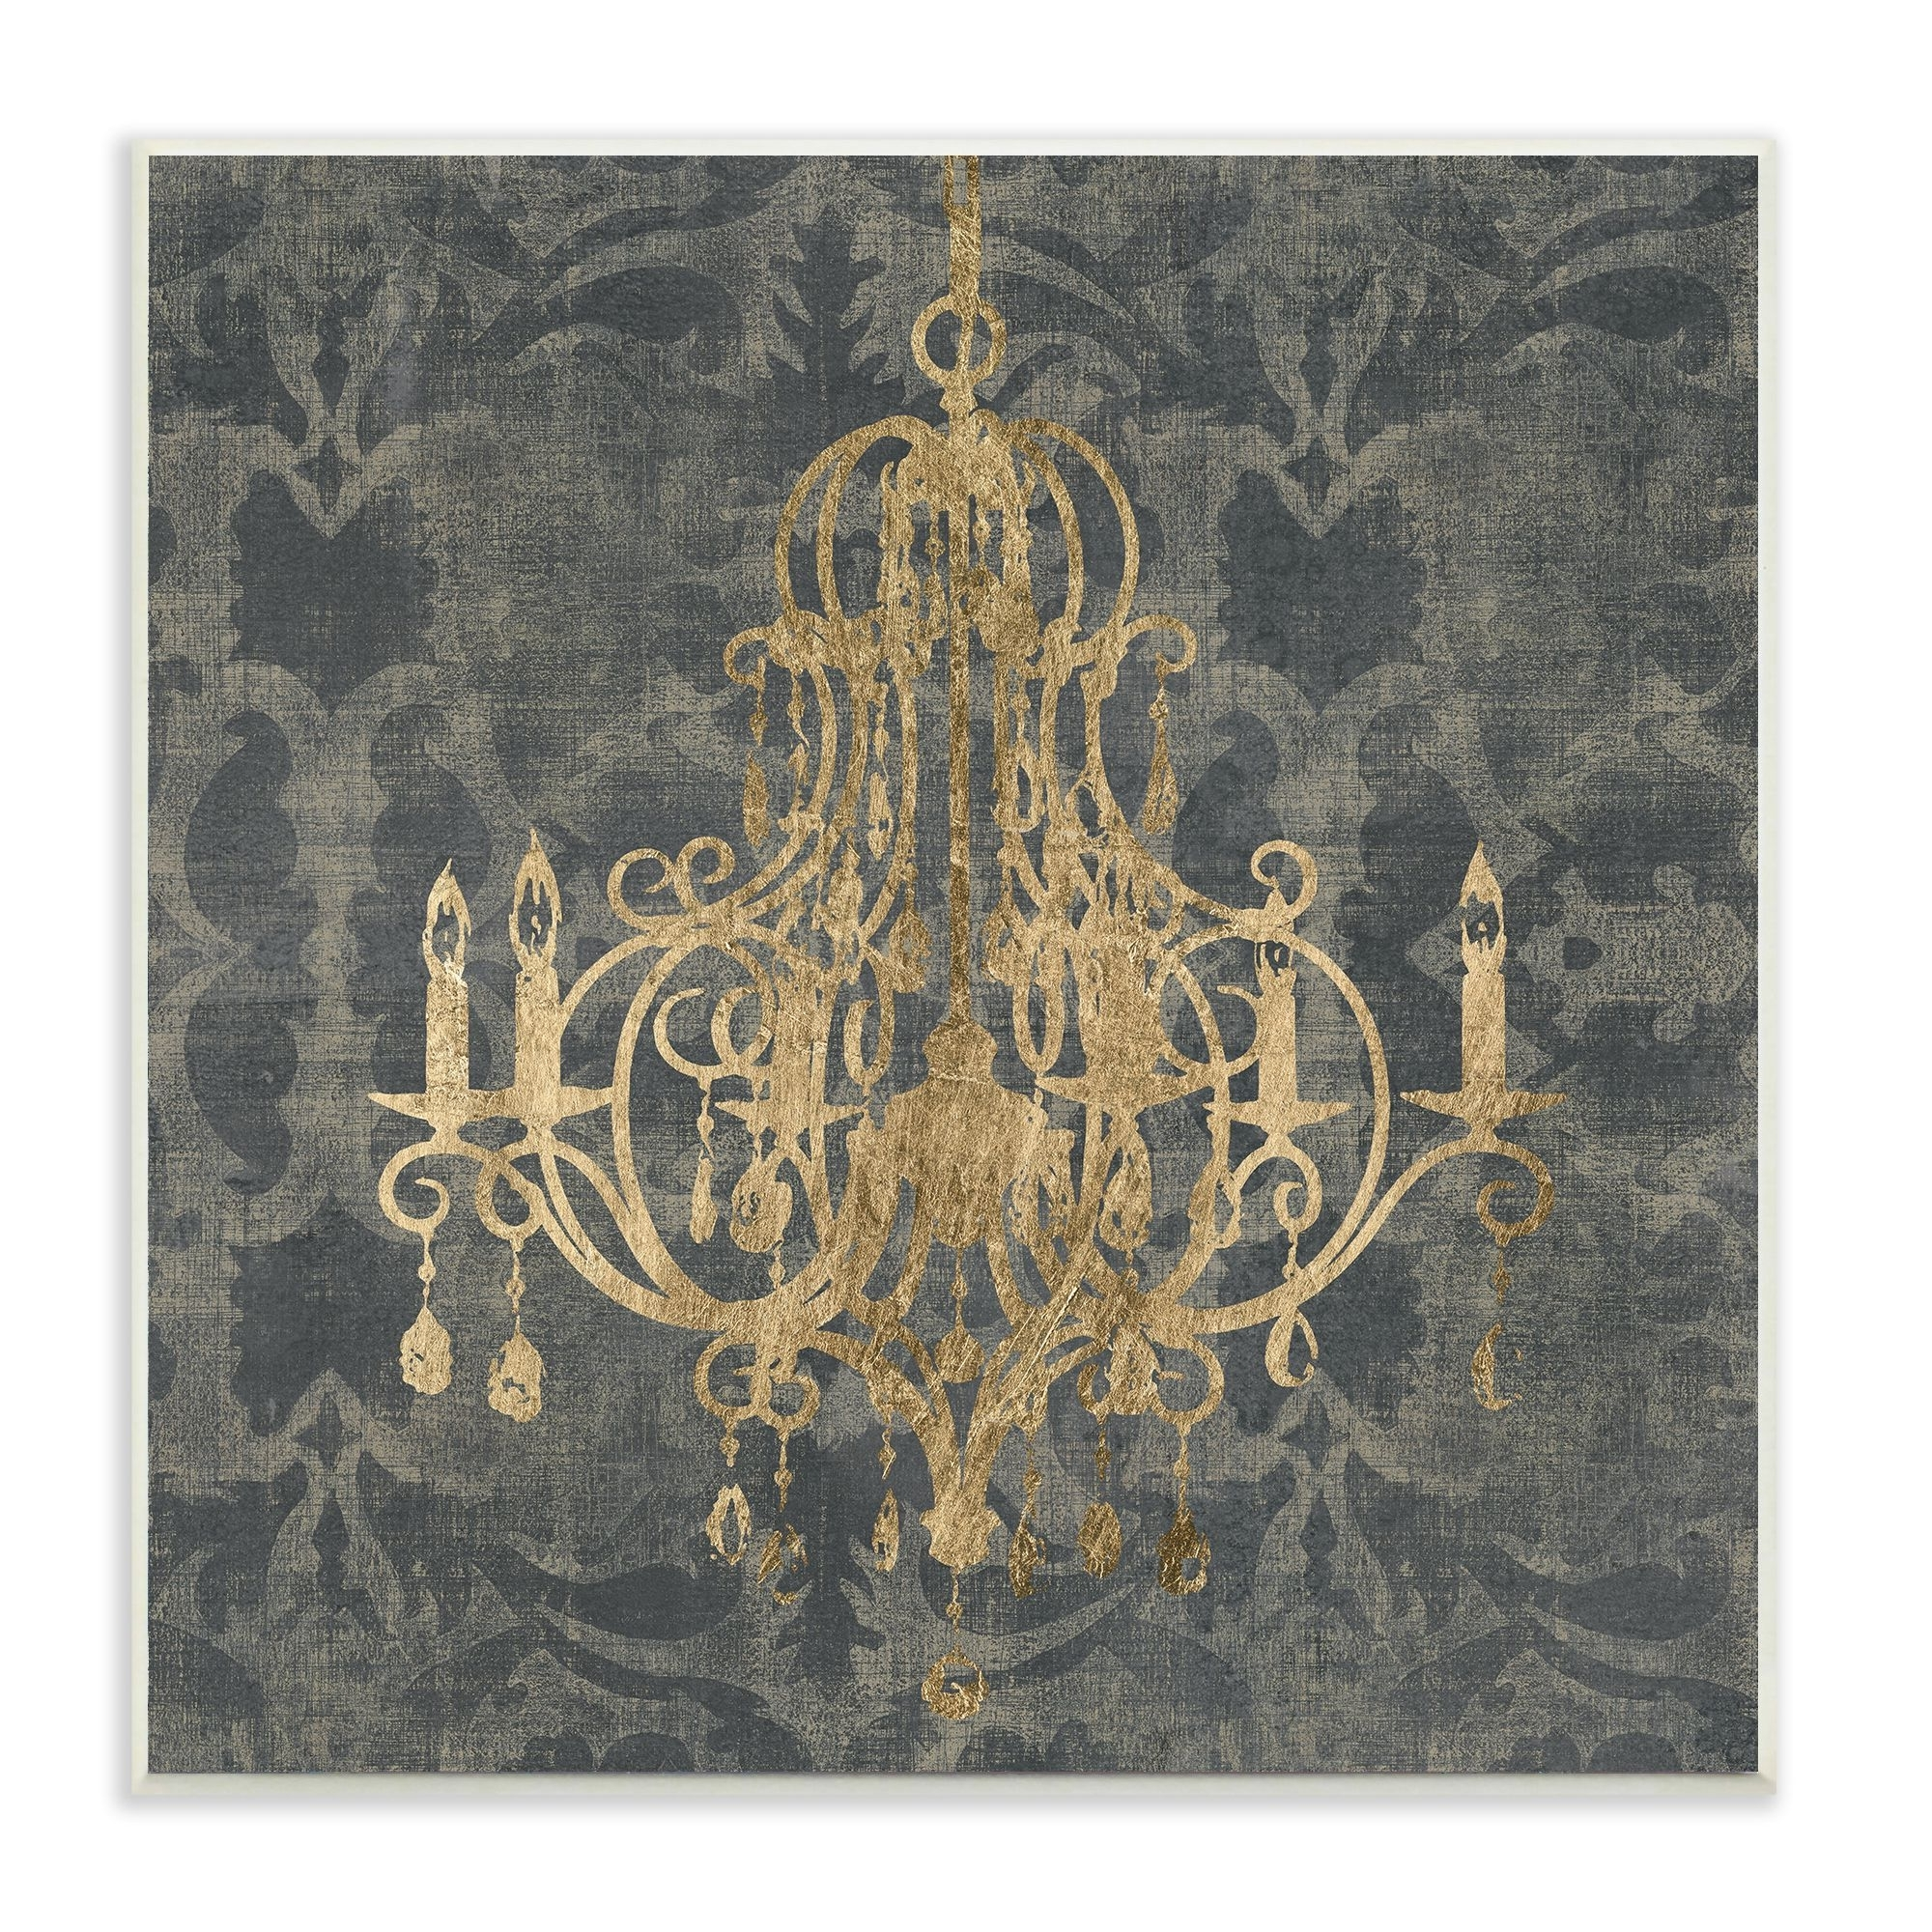 Well Known Chandelier Wall Art Intended For Stupell Wooden Damask Chandelier Themed Stretched Canvas Wall Art (View 14 of 15)